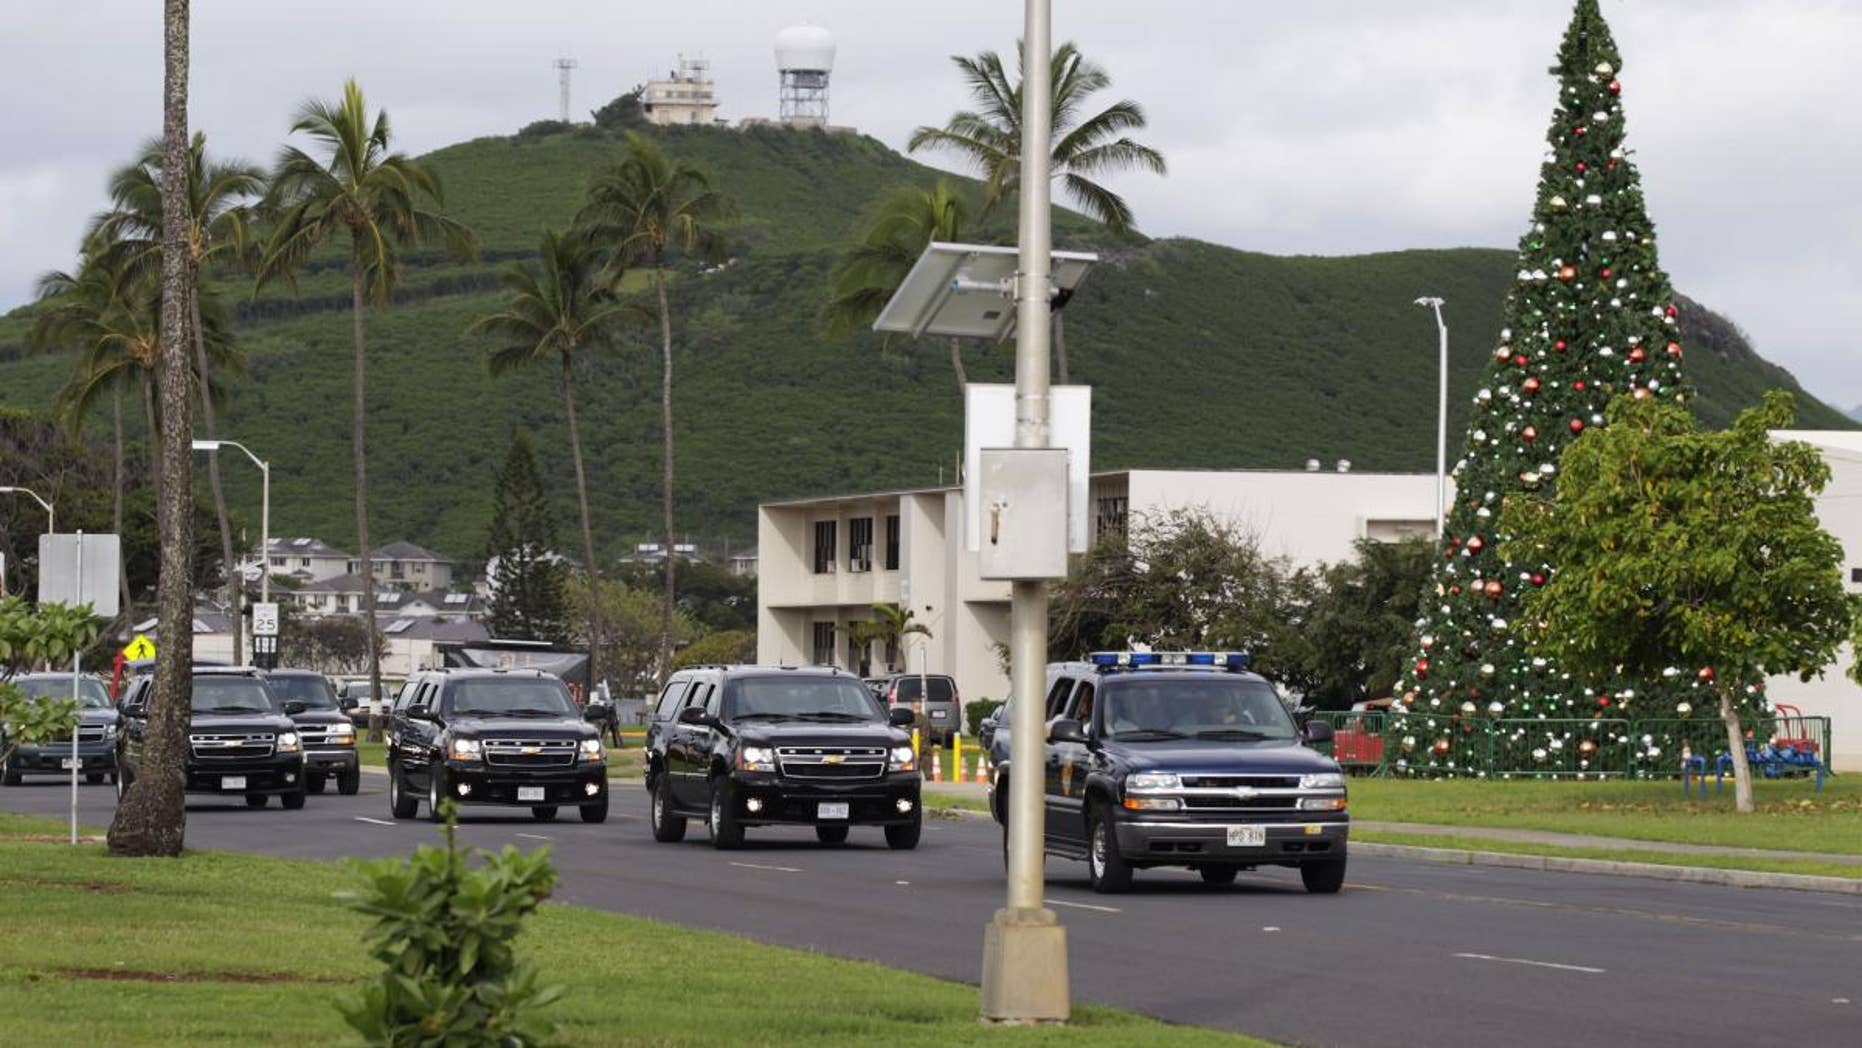 President Barack Obama and first lady Michelle Obama travel by motorcade on Marine Corps Base Hawaii in Kaneohe, Hawaii, Monday, Dec. 27, 2010. (AP Photo/Carolyn Kaster)